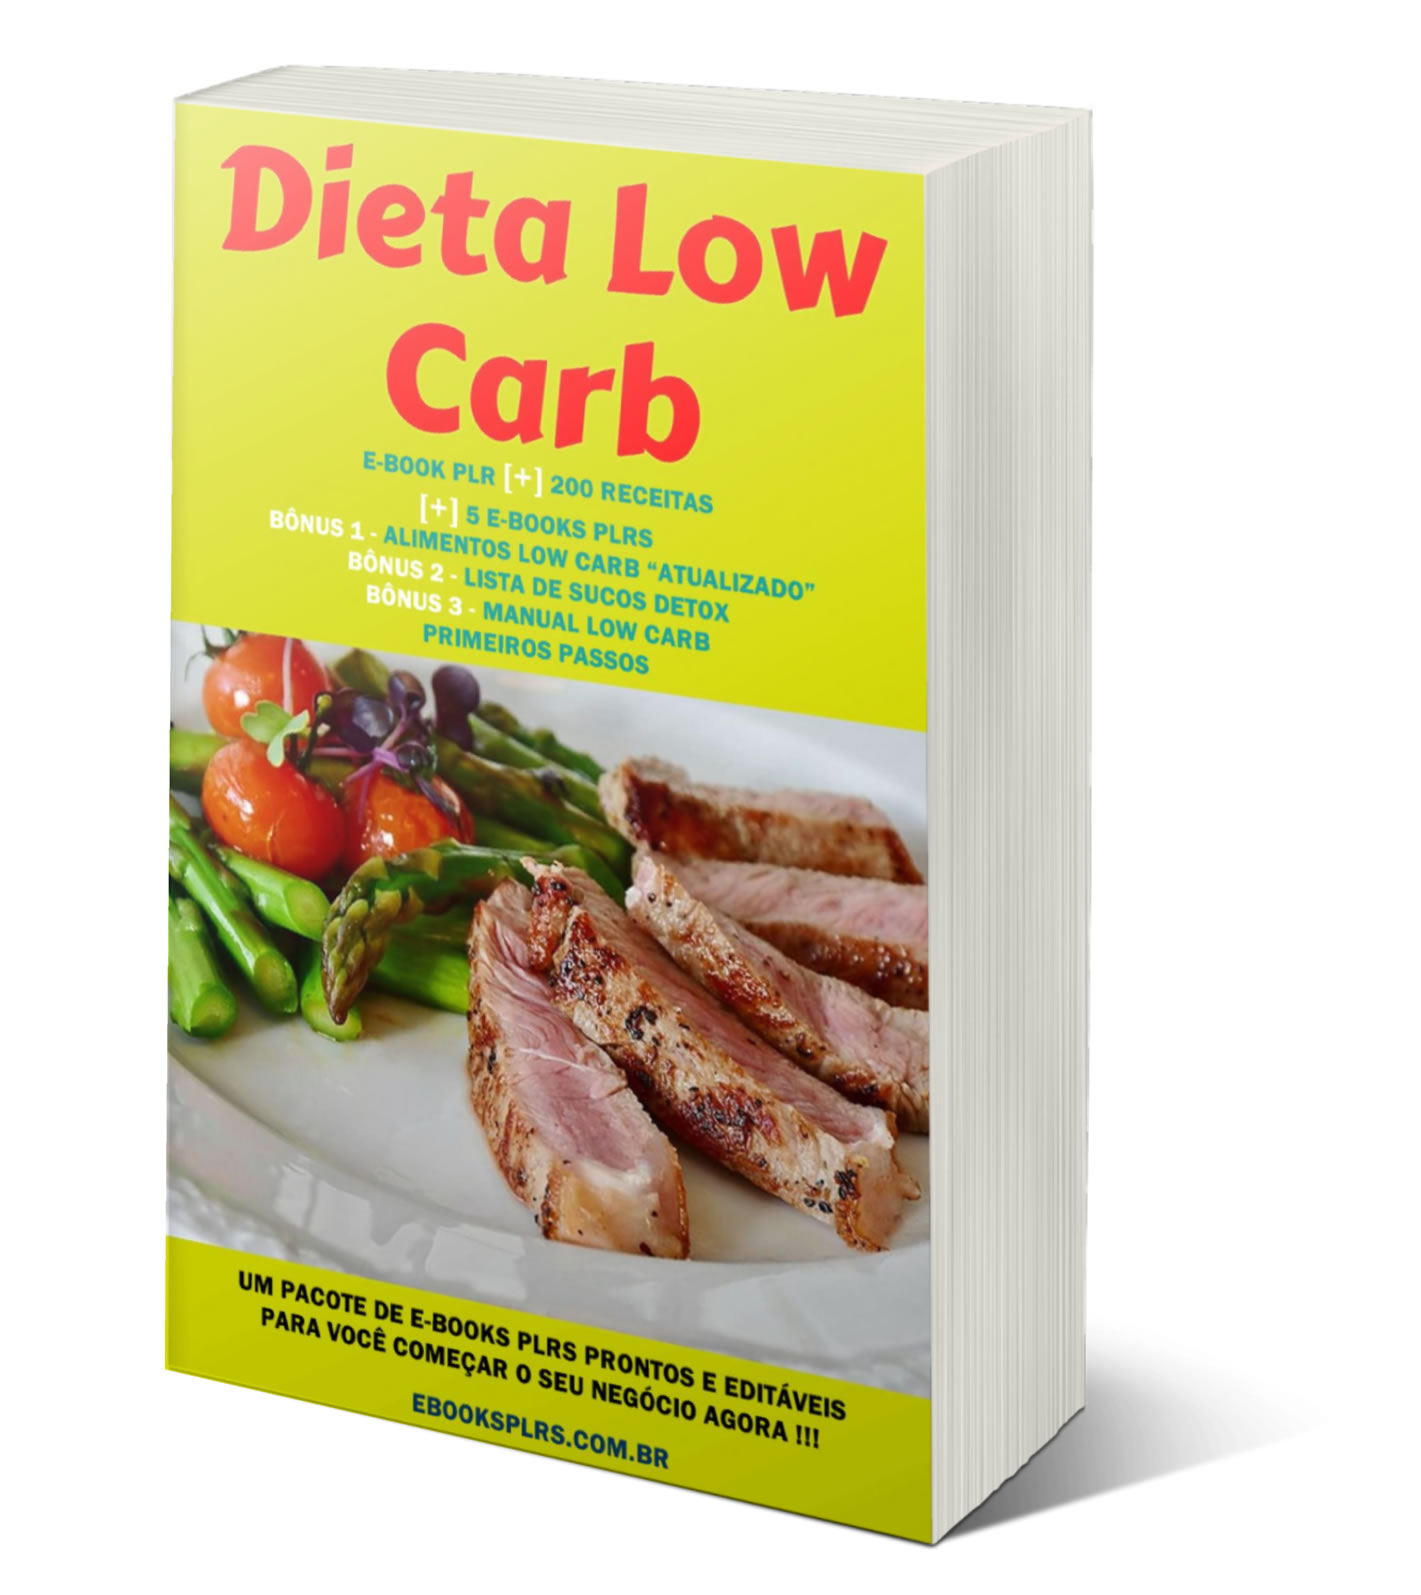 ebook plr nicho low carb